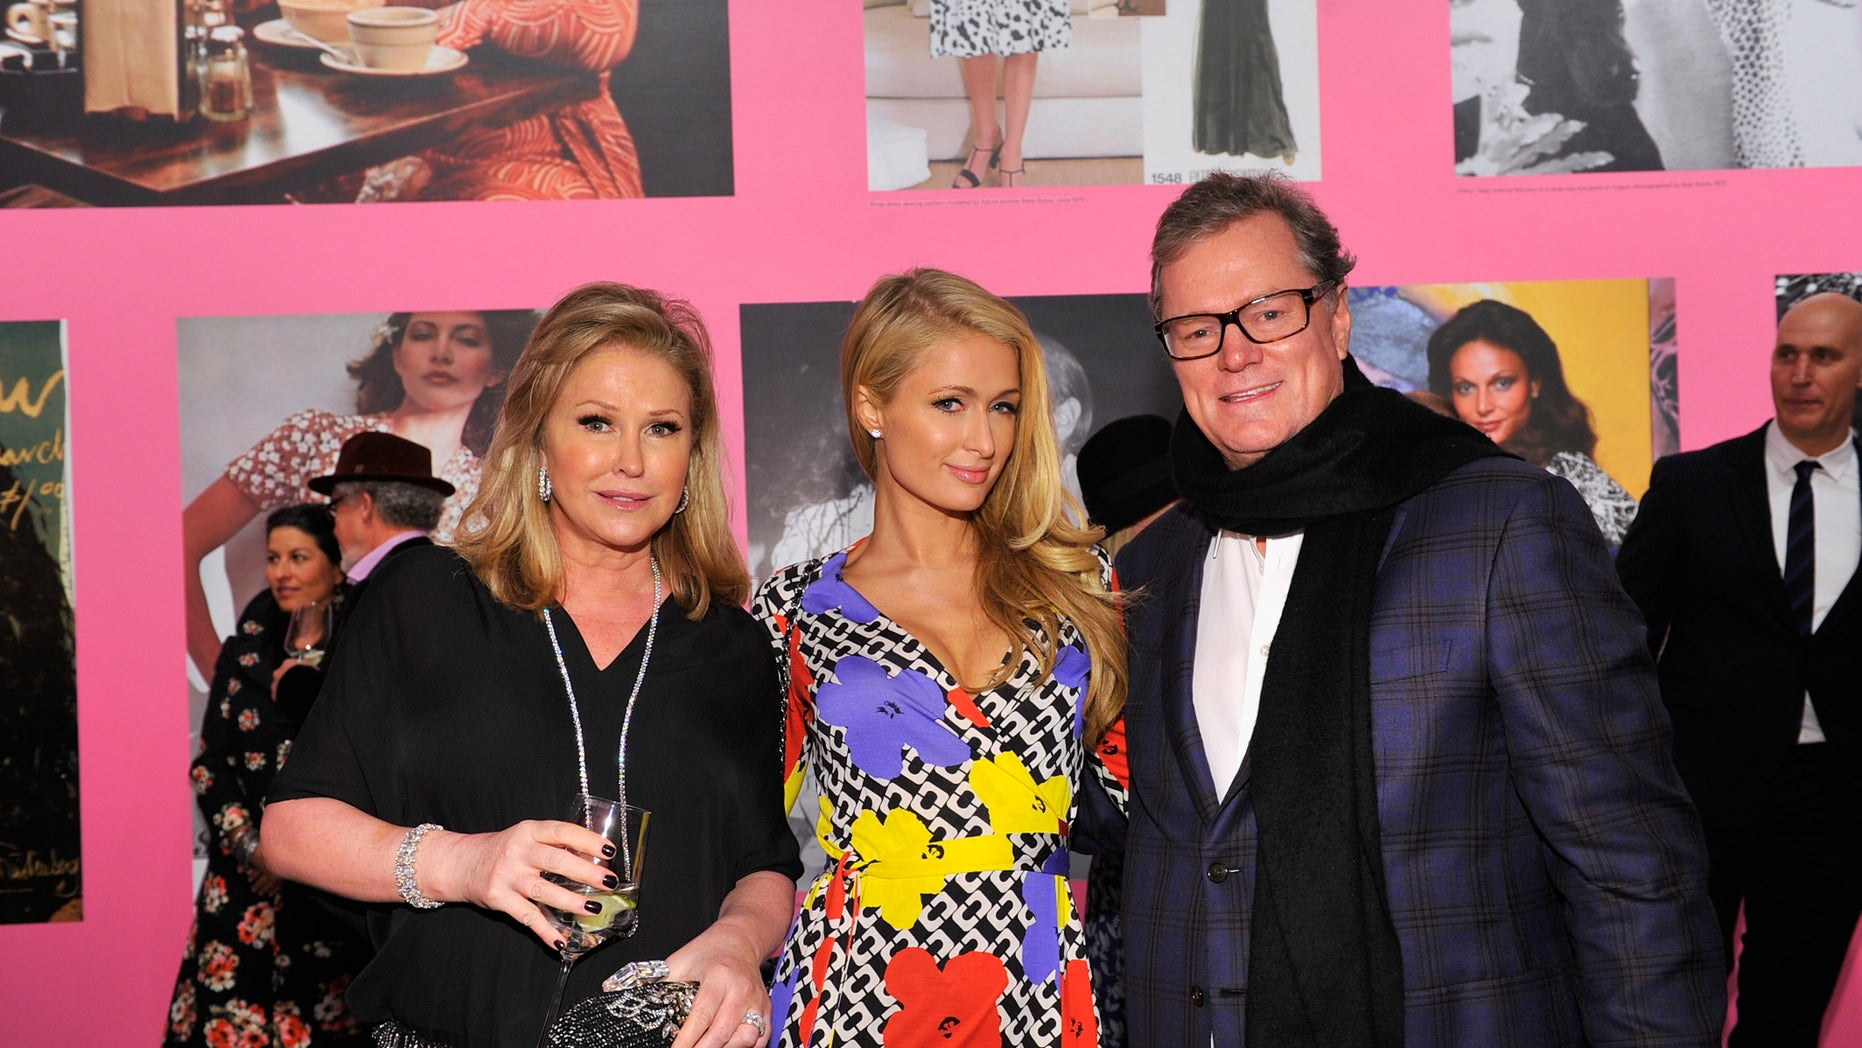 Kathy Hilton, Paris Hilton, wearing Diane Von Furstenberg, and Rick Hilton attend Diane Von Furstenberg's Journey of A Dress Exhibition Opening Celebration at May Company Building at LACMA West.